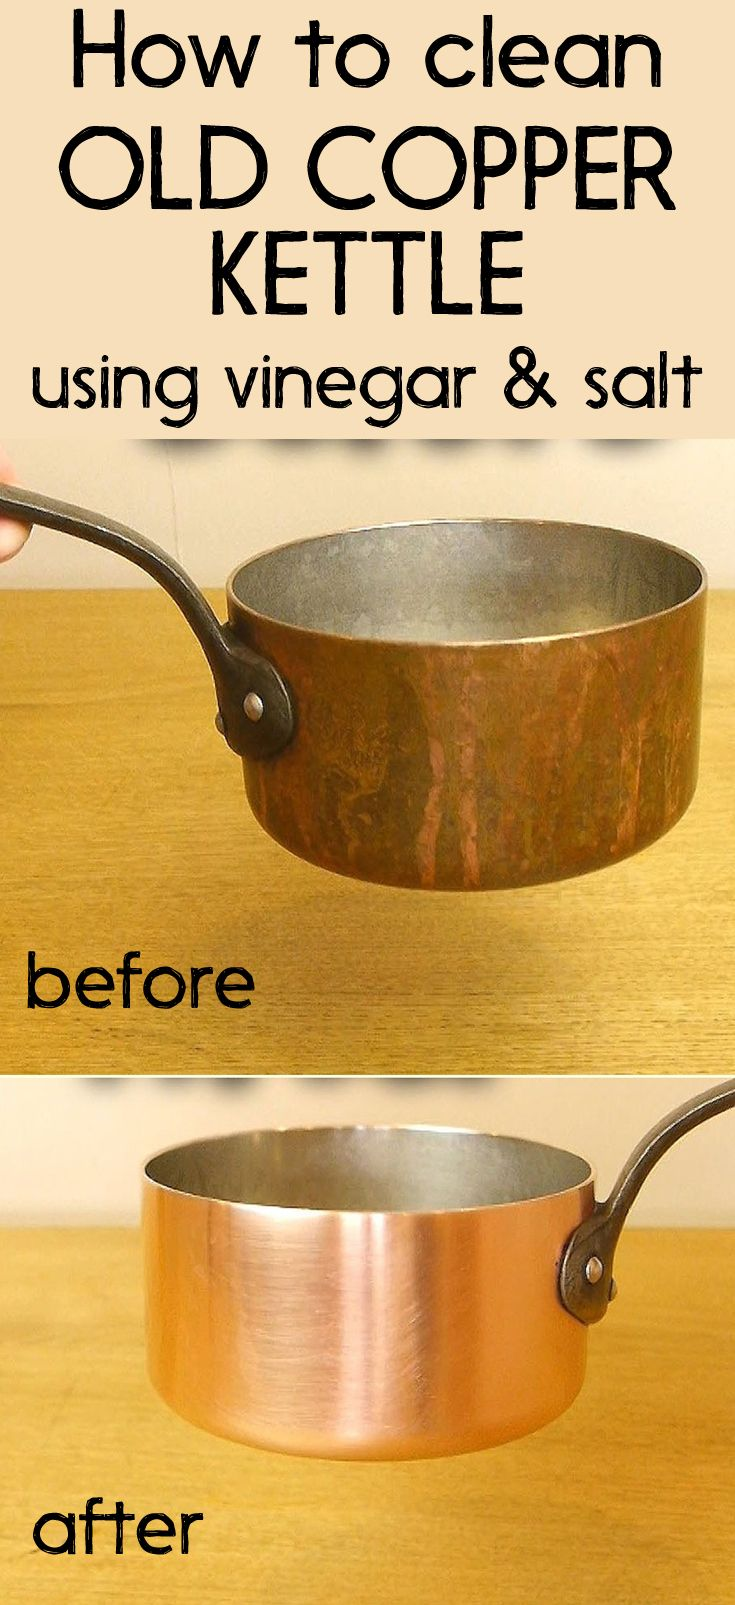 How to clean an old copper kettle using vinegar and salt